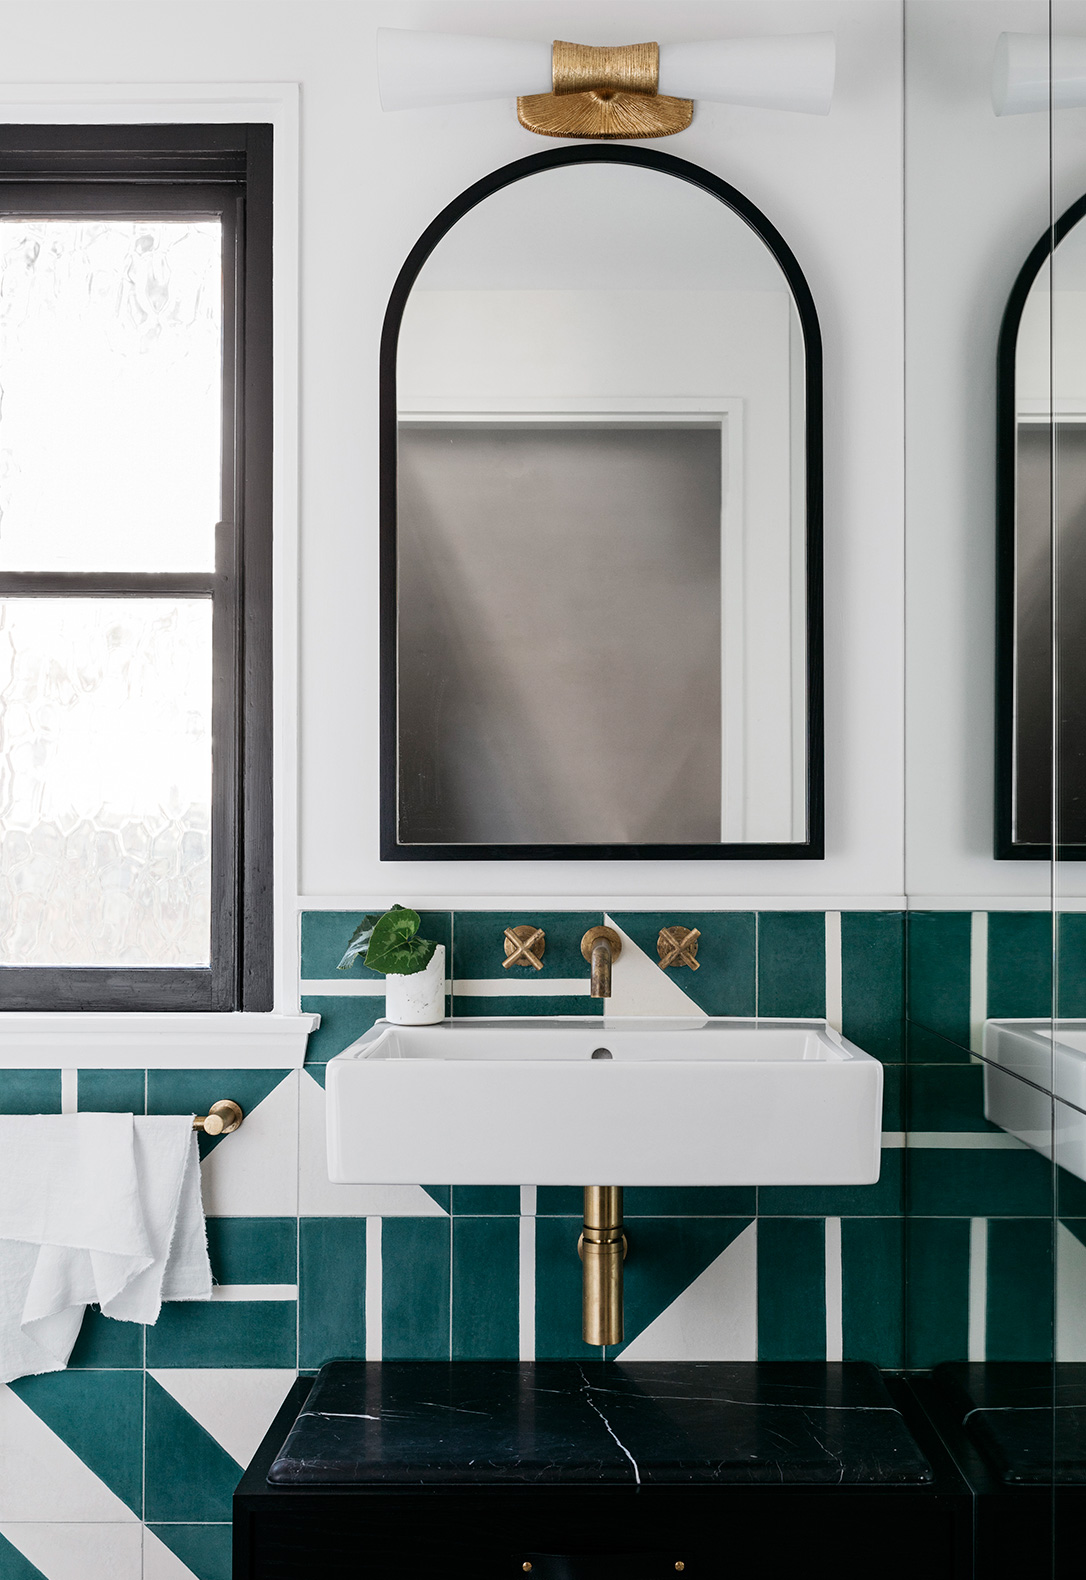 Pittsburgh Paints Color of the Year 2019 | Tile ideas | KitchAnn Style